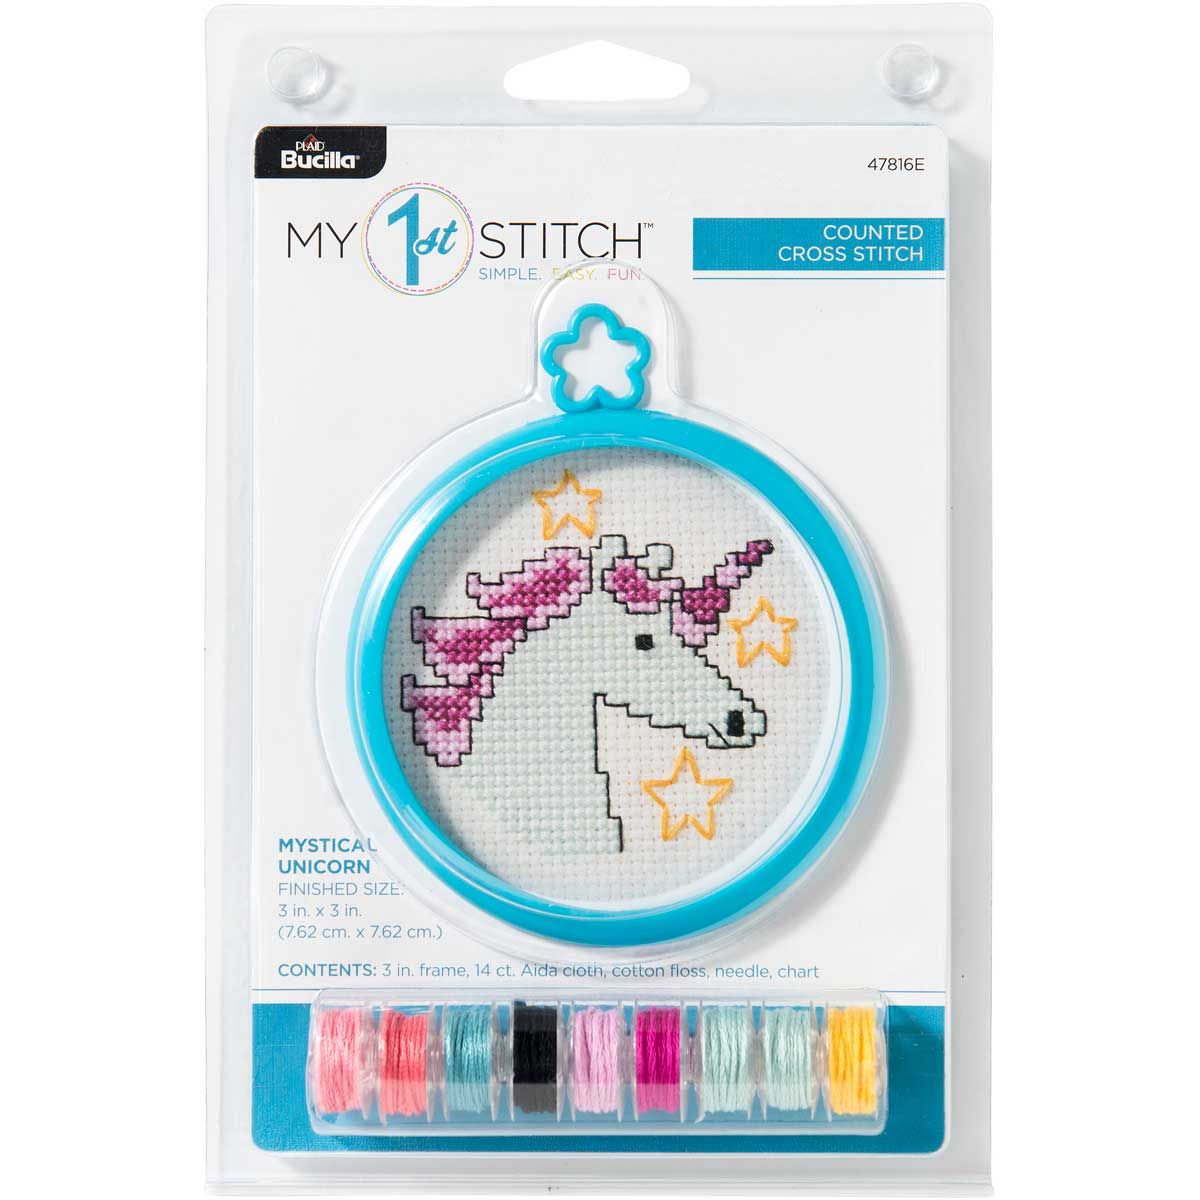 Bucilla ® My 1st Stitch™ - Counted Cross Stitch Kits - Mini - Mystical Unicorn